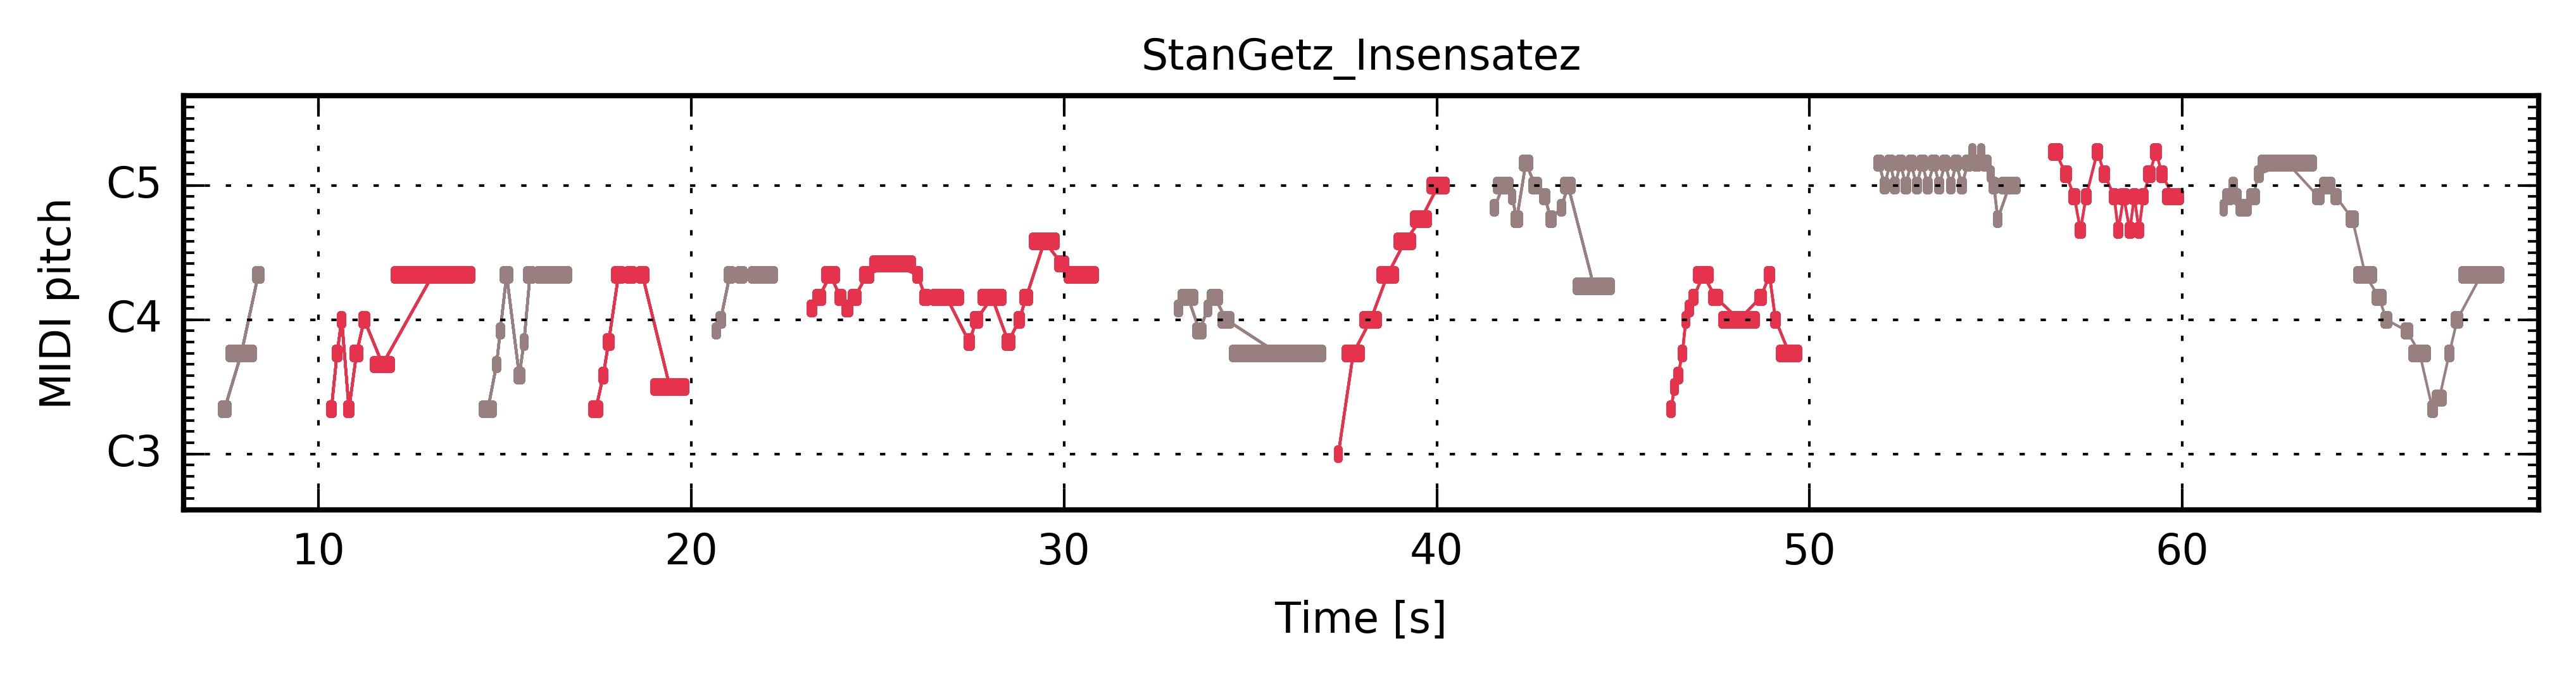 ../../_images/PianoRoll_StanGetz_Insensatez.jpg